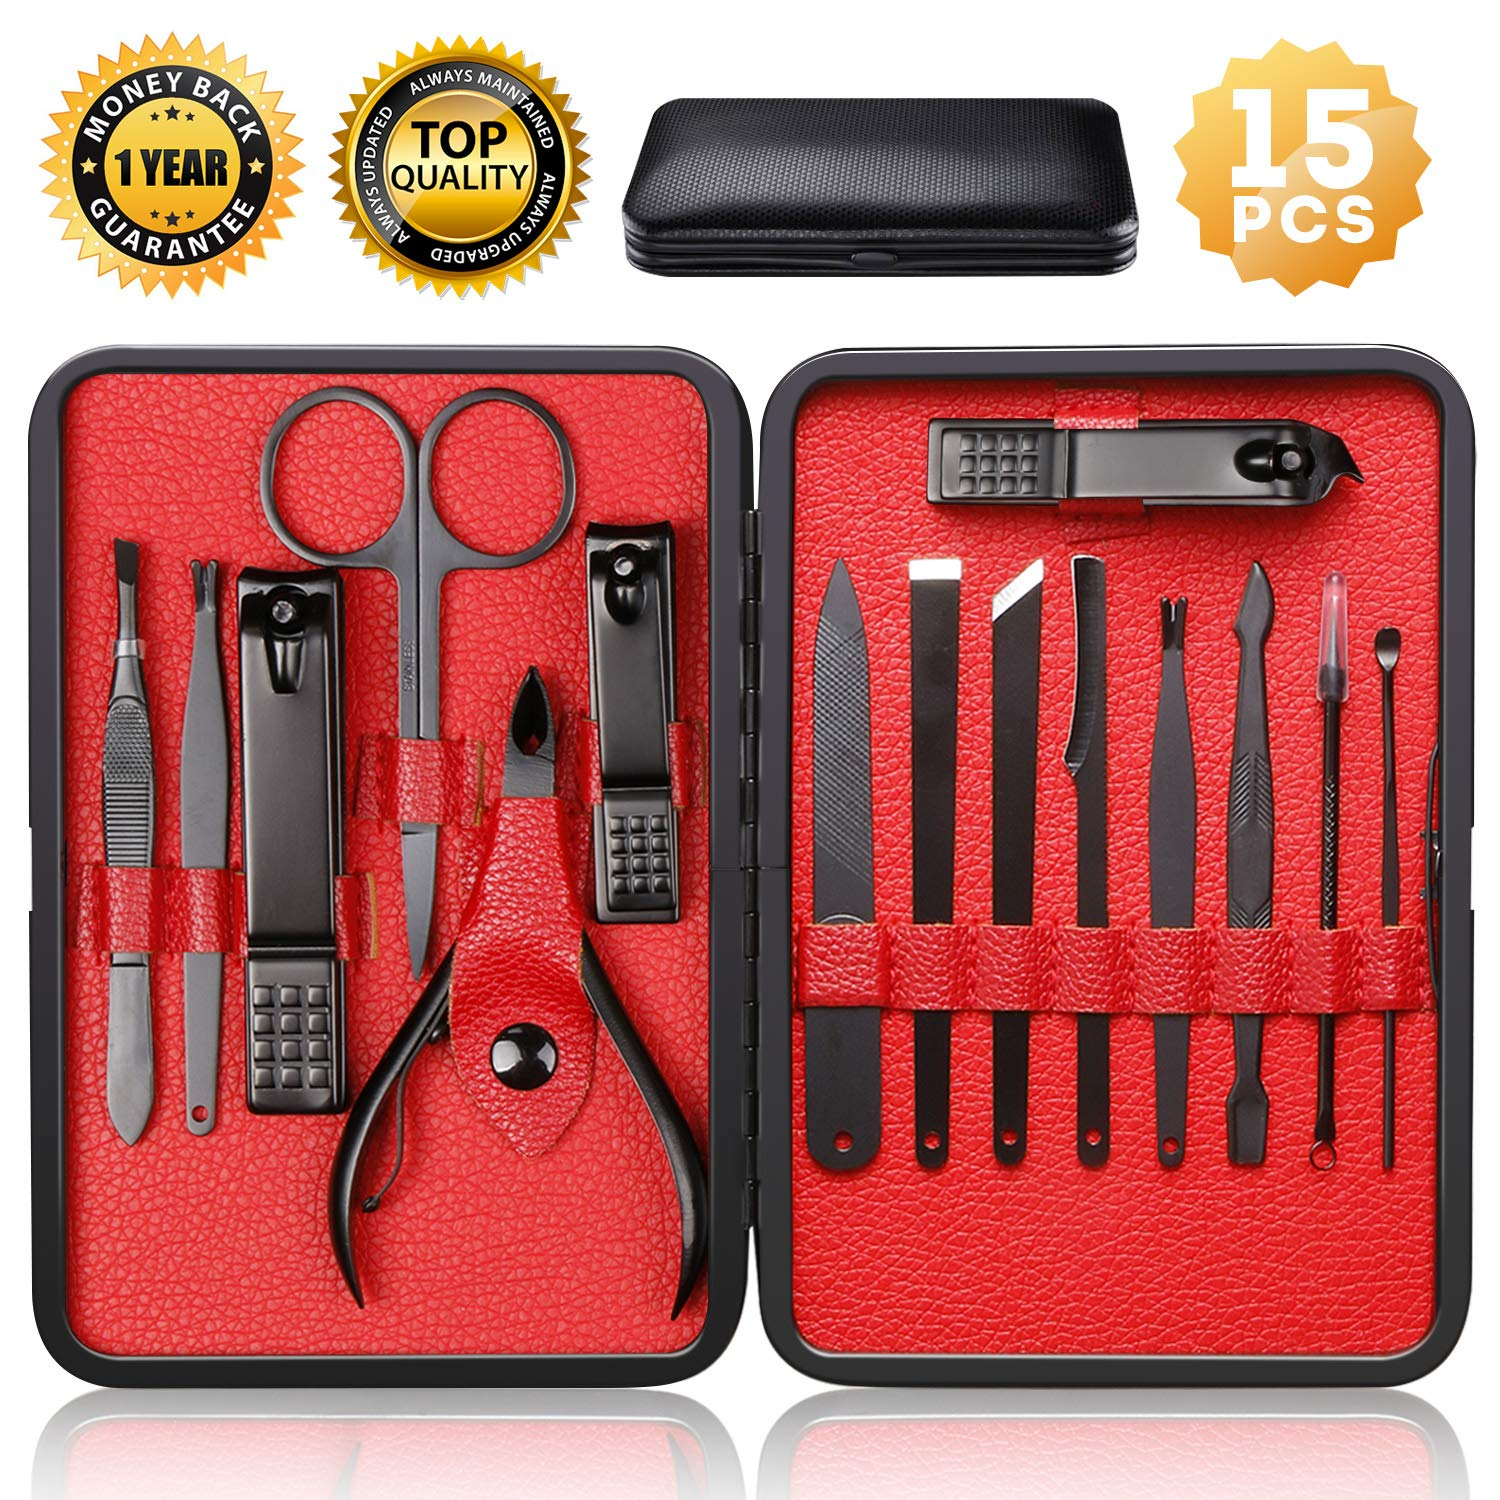 Nail Clippers Sets High Precisio Stainless Steel